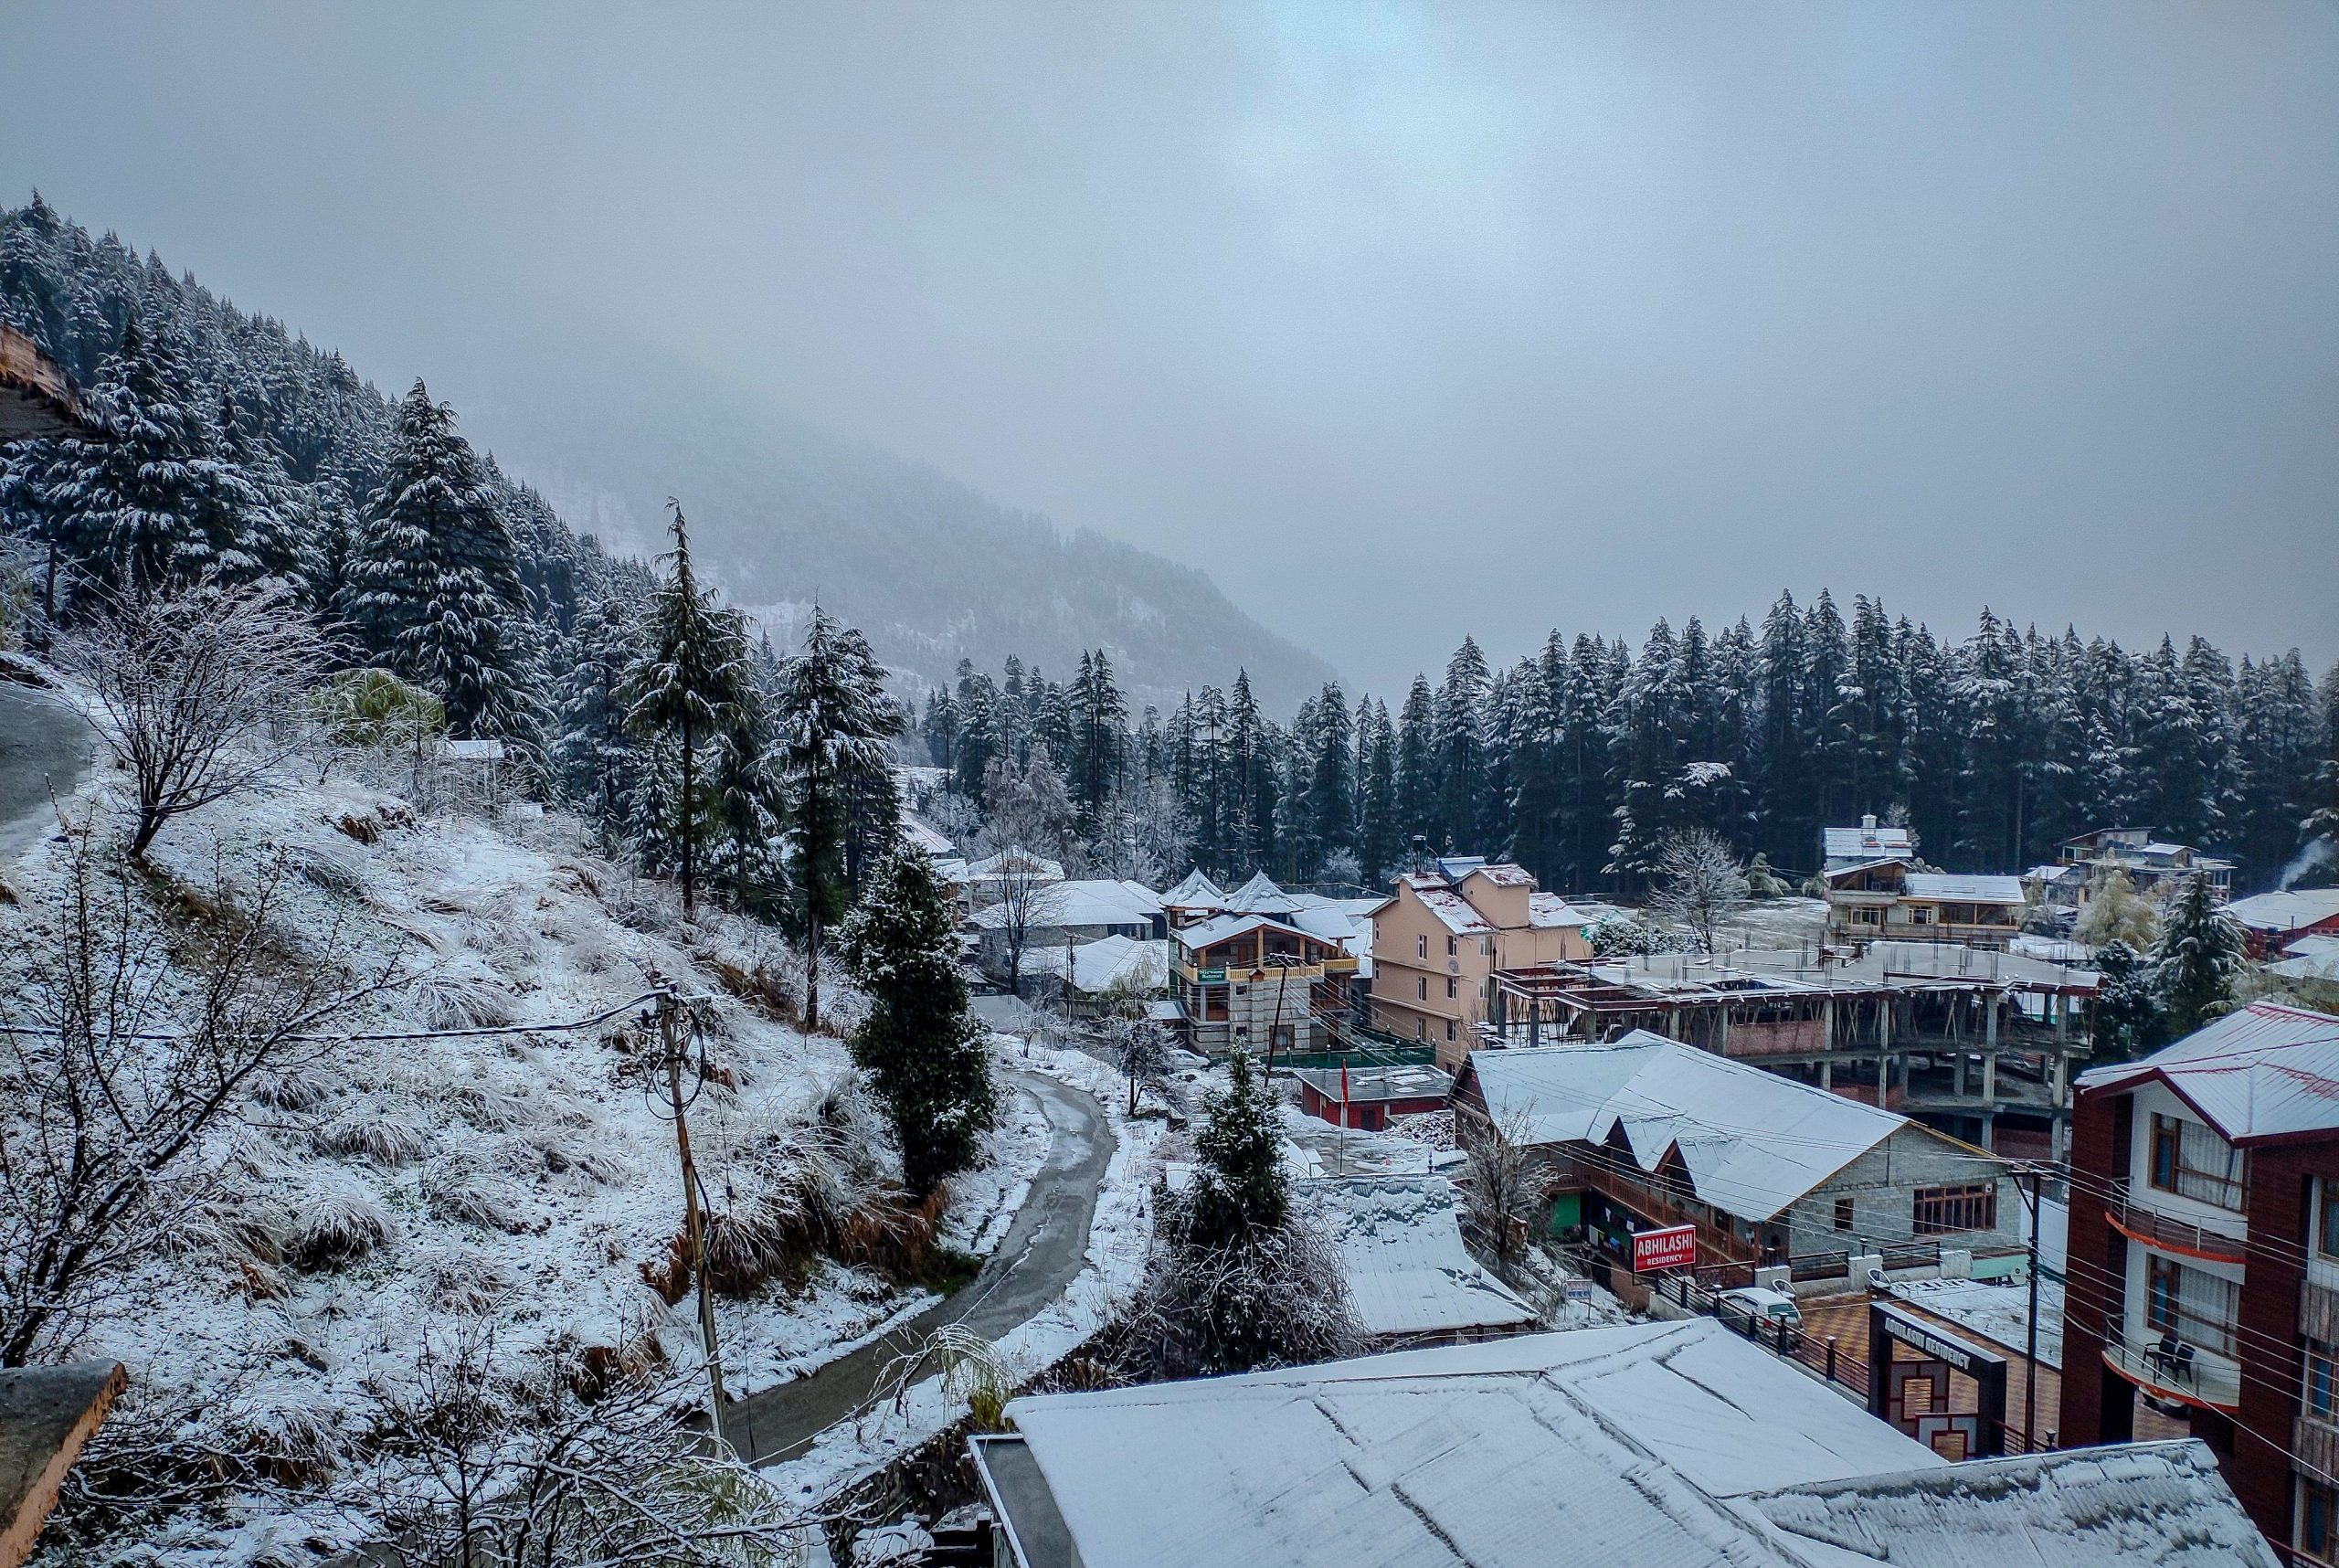 A hill town covered with snow